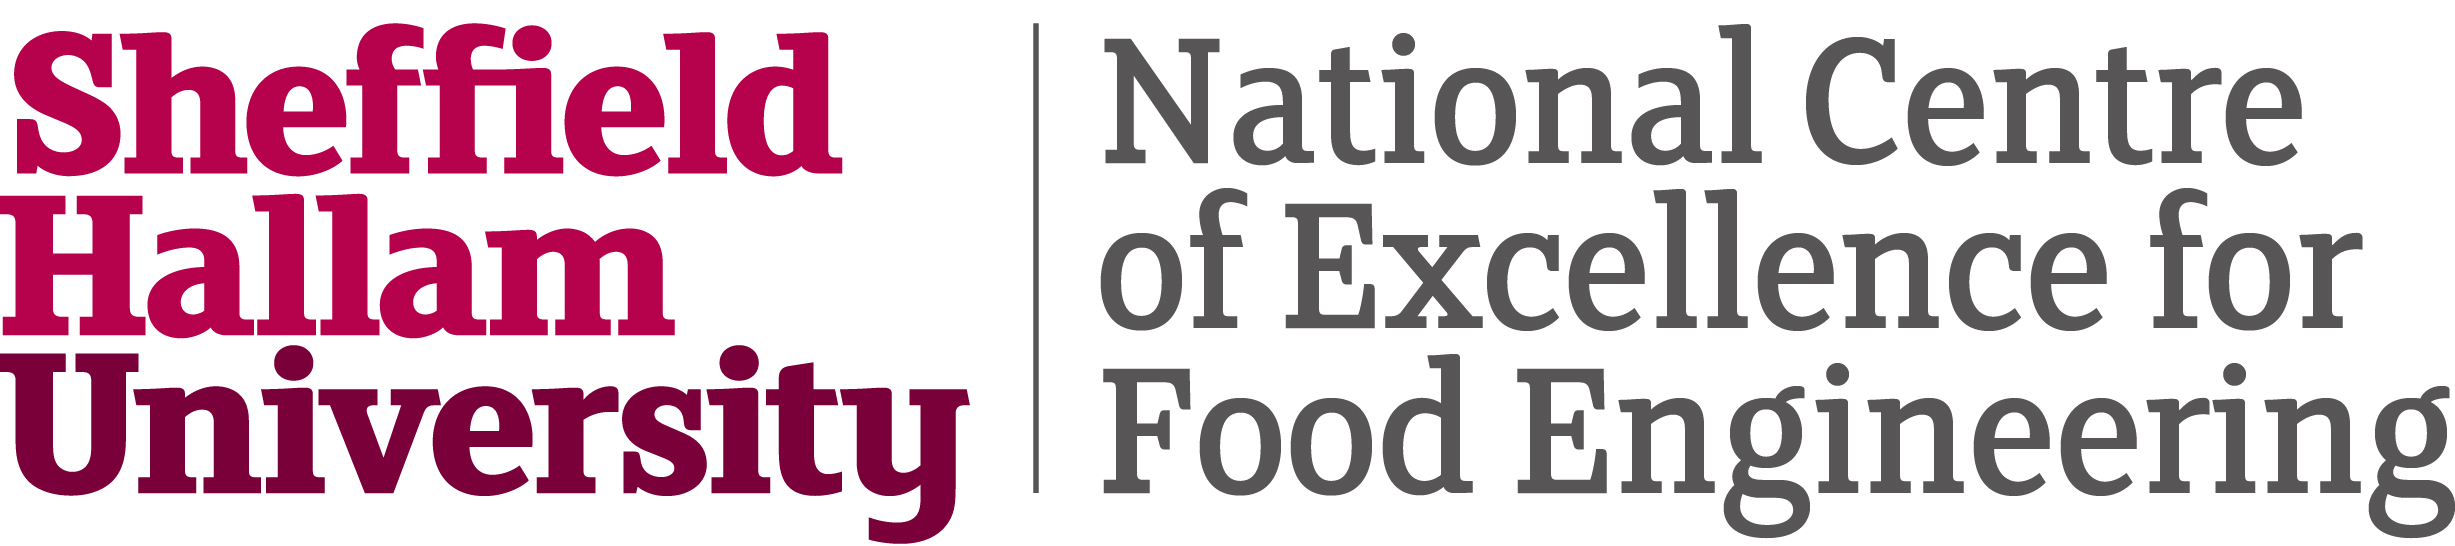 National Centre of Excellence for Food Engineering logo